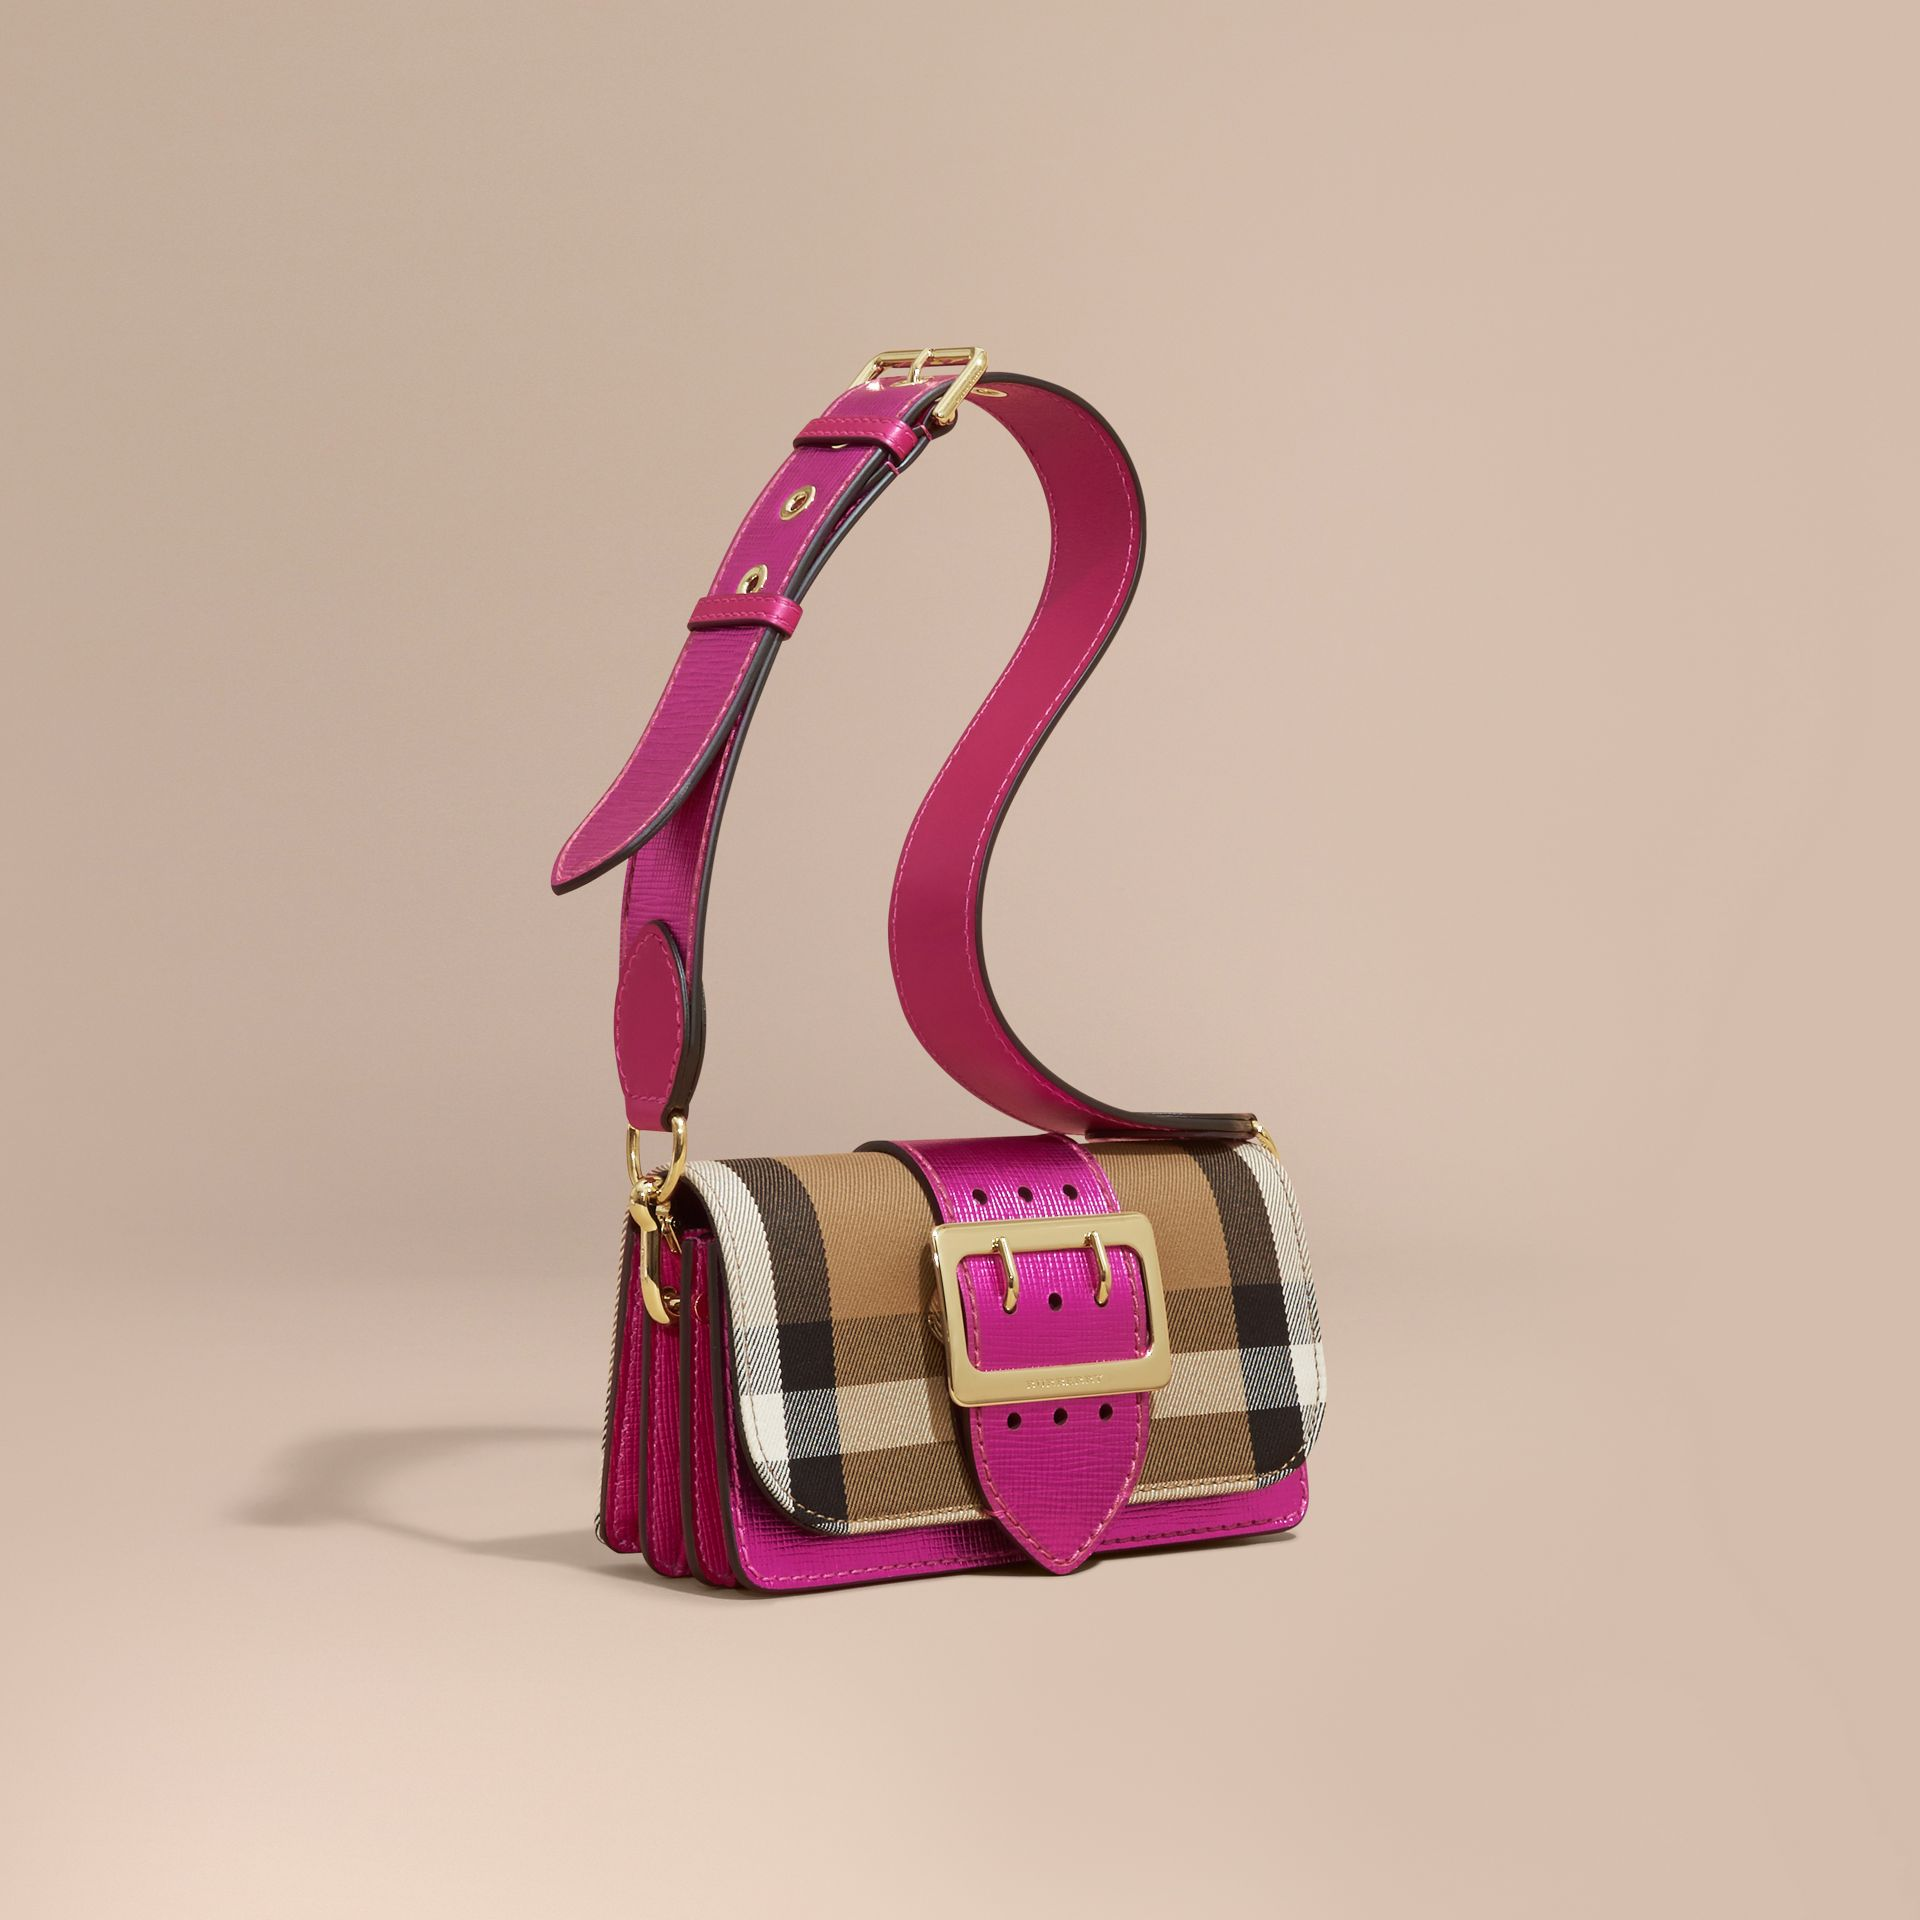 Borsa The Buckle piccola con motivo House check e pelle Rosa Intenso - immagine della galleria 1